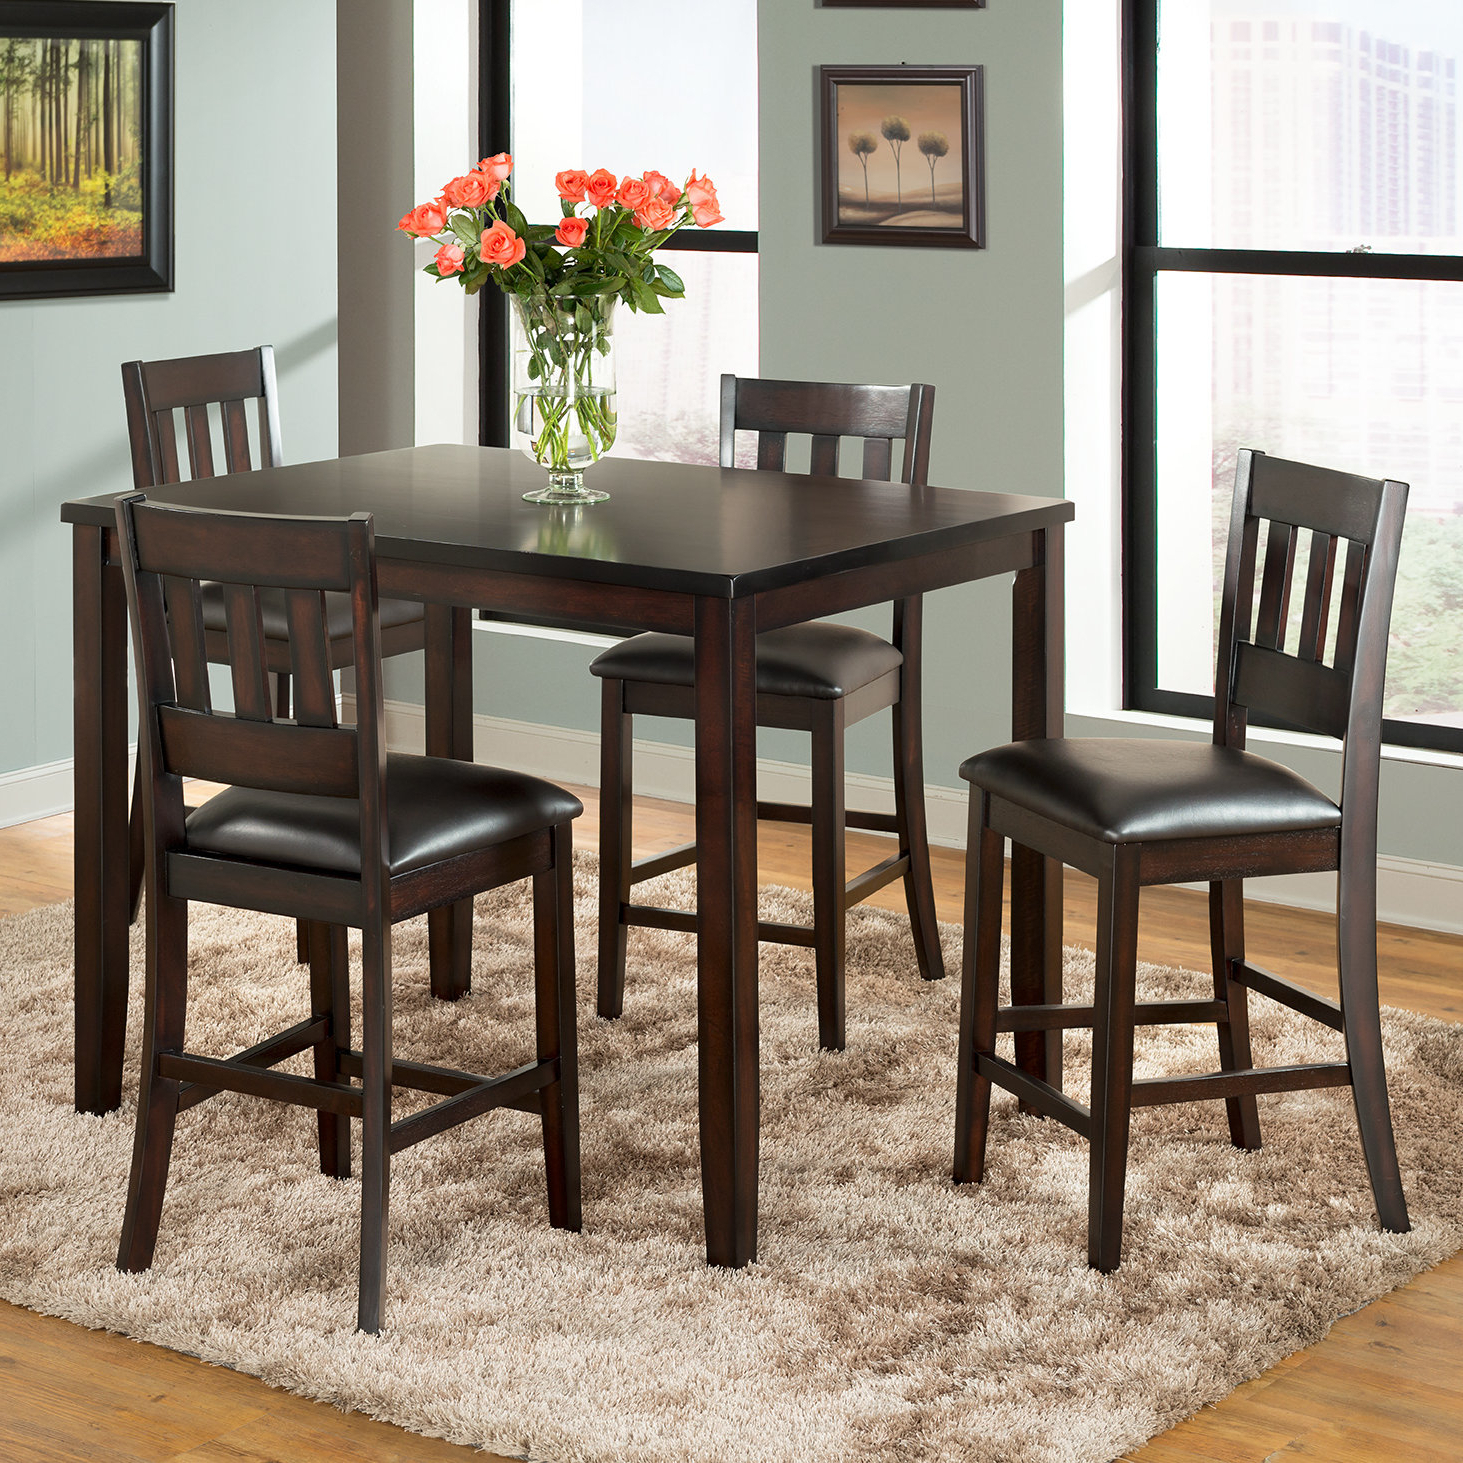 Most Popular Americano 5 Piece Pub Table Set In Presson 3 Piece Counter Height Dining Sets (View 7 of 20)